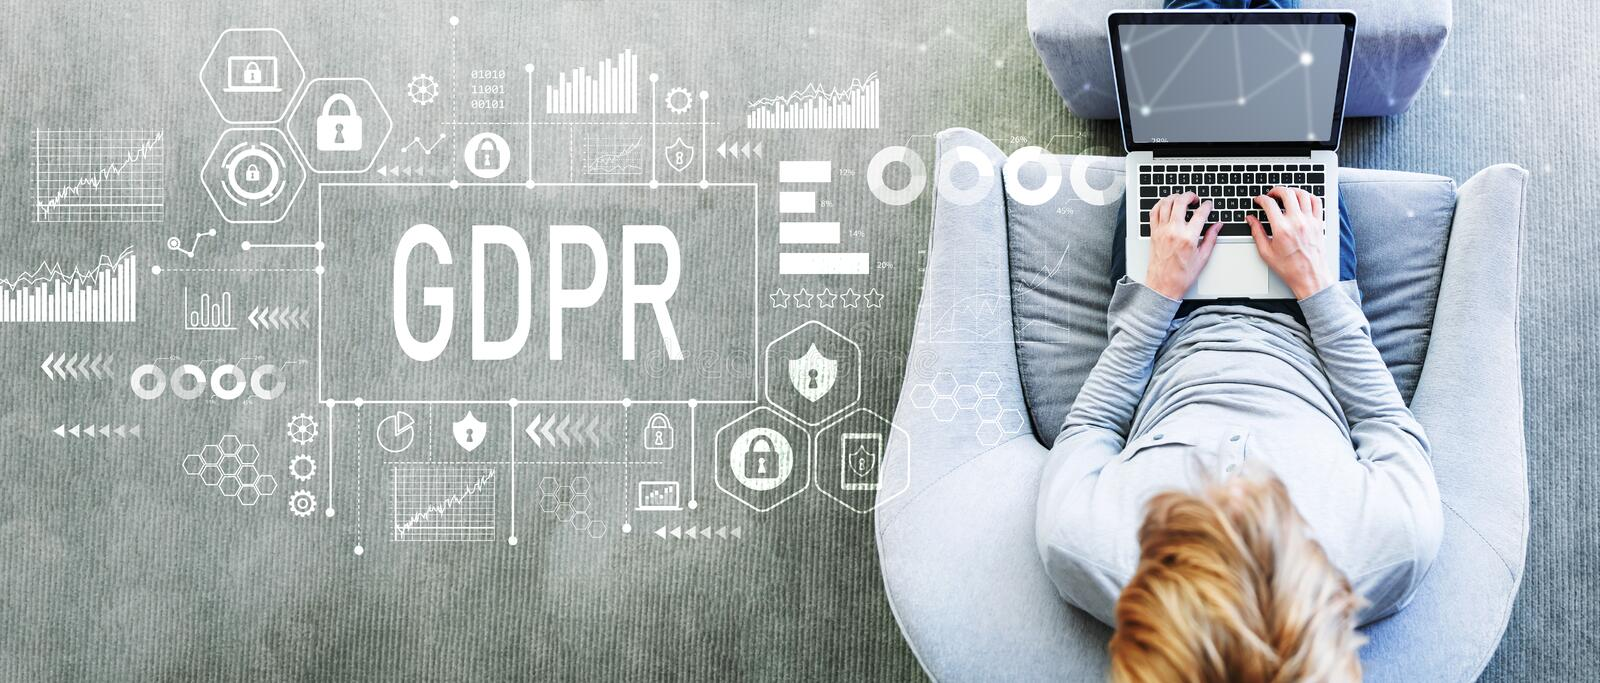 GDPR with man using a laptop royalty free stock images